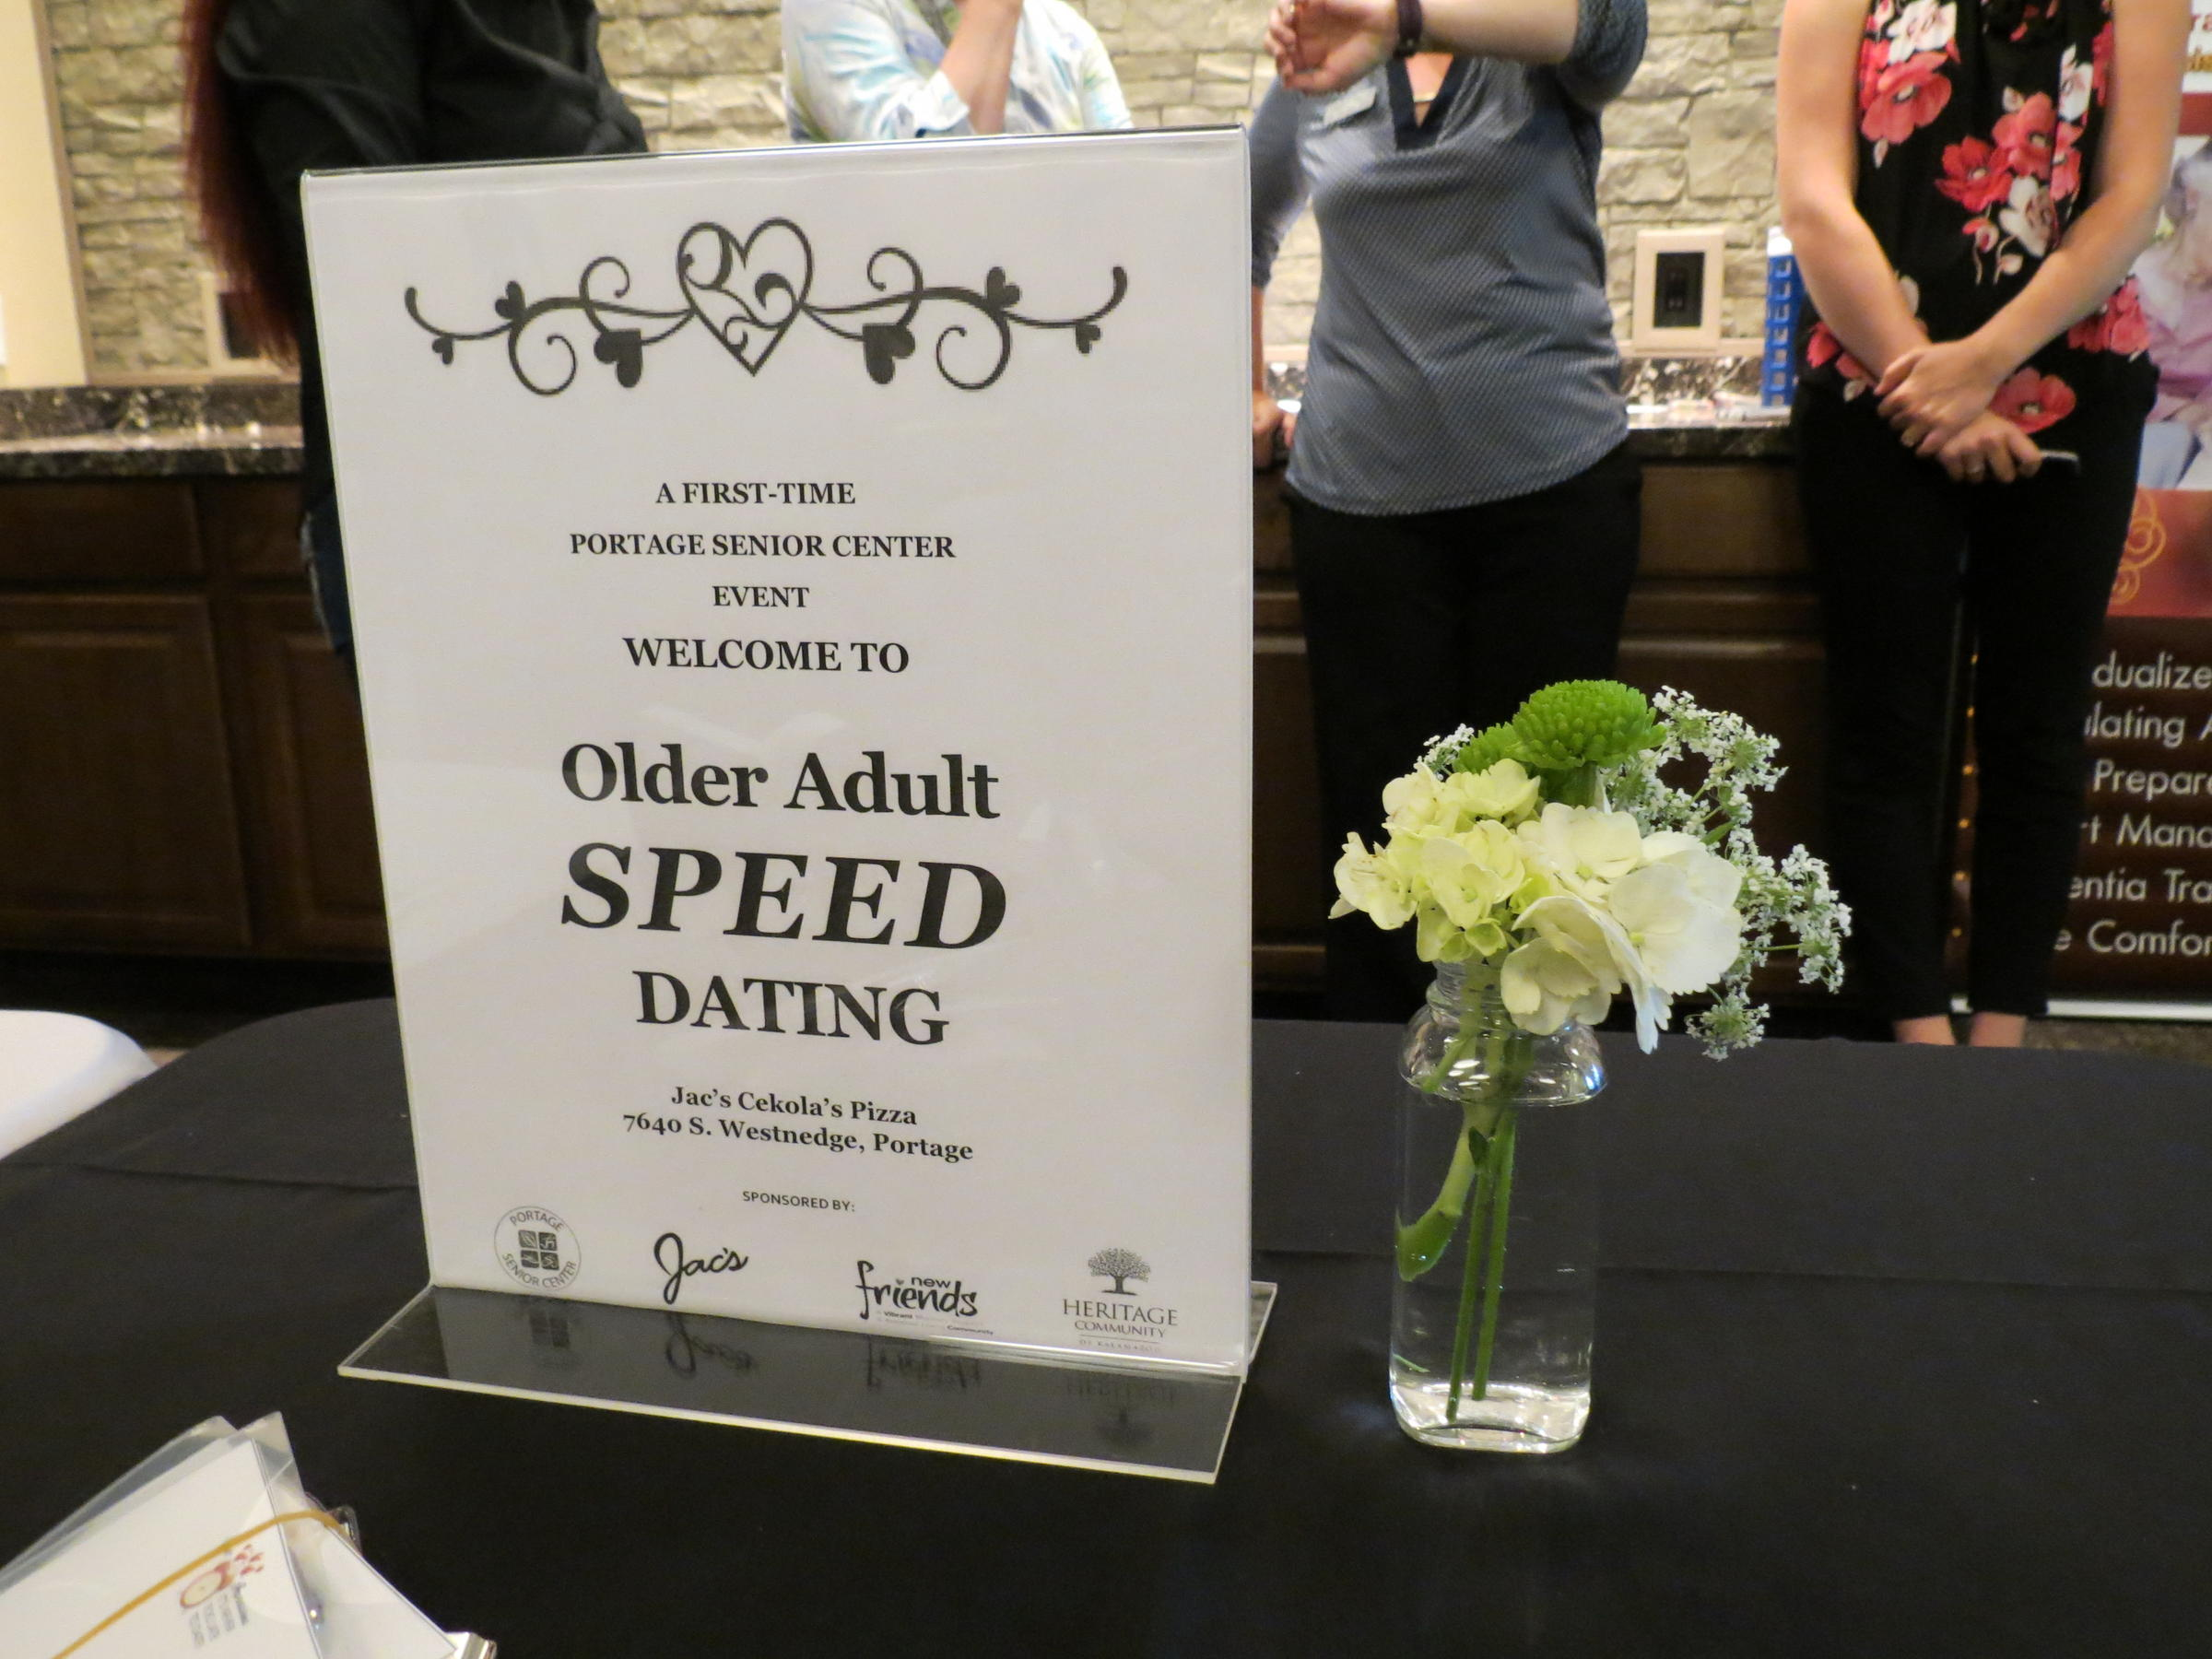 Speed dating minneapolis over 50